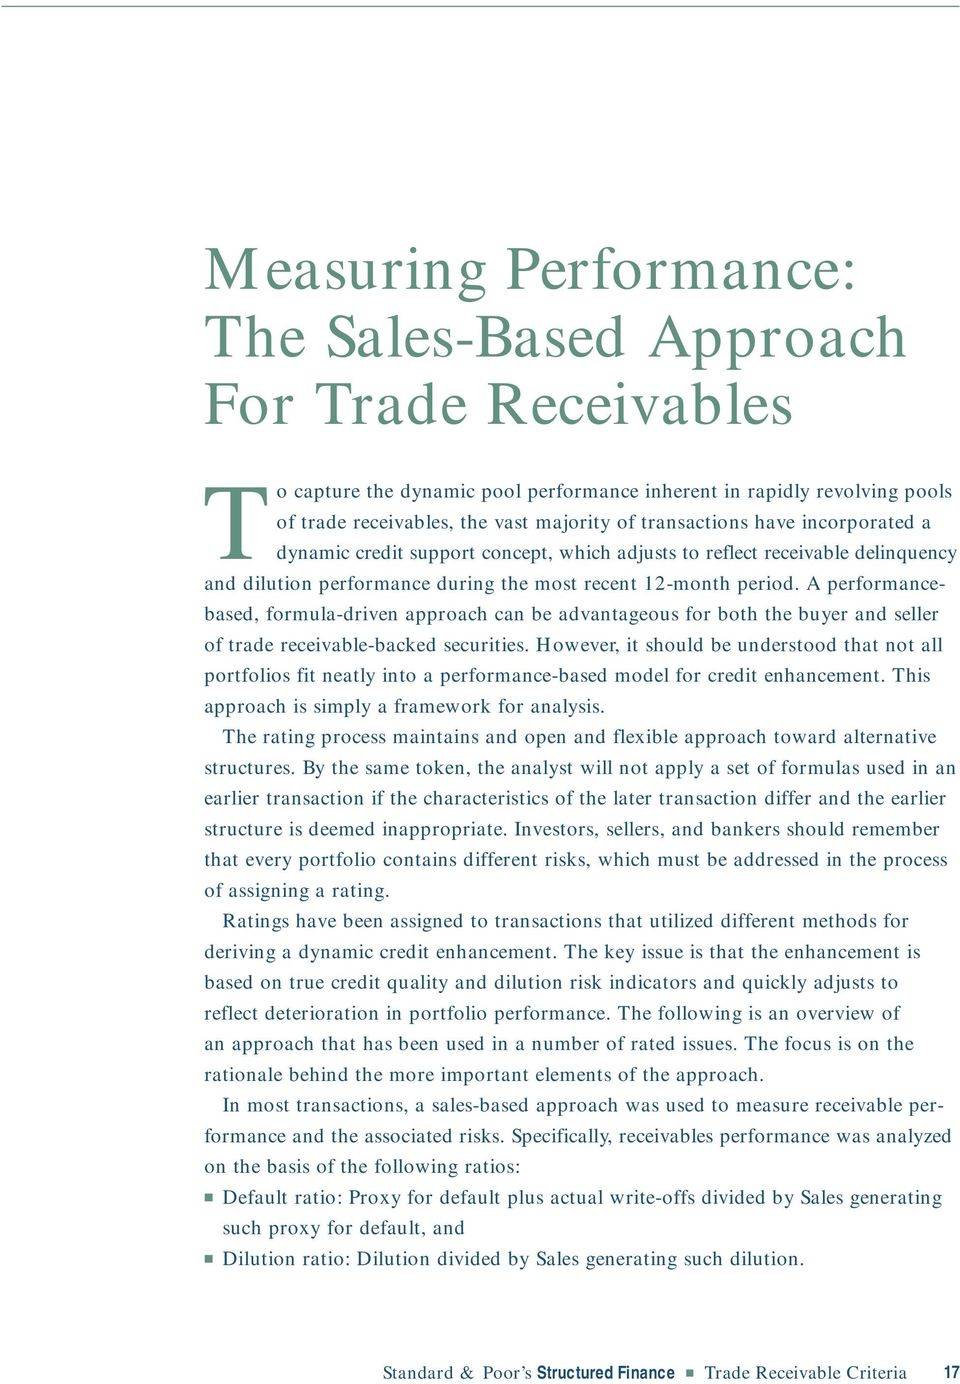 A performancebased, formula-driven approach can be advantageous for both the buyer and seller of trade receivable-backed securities.